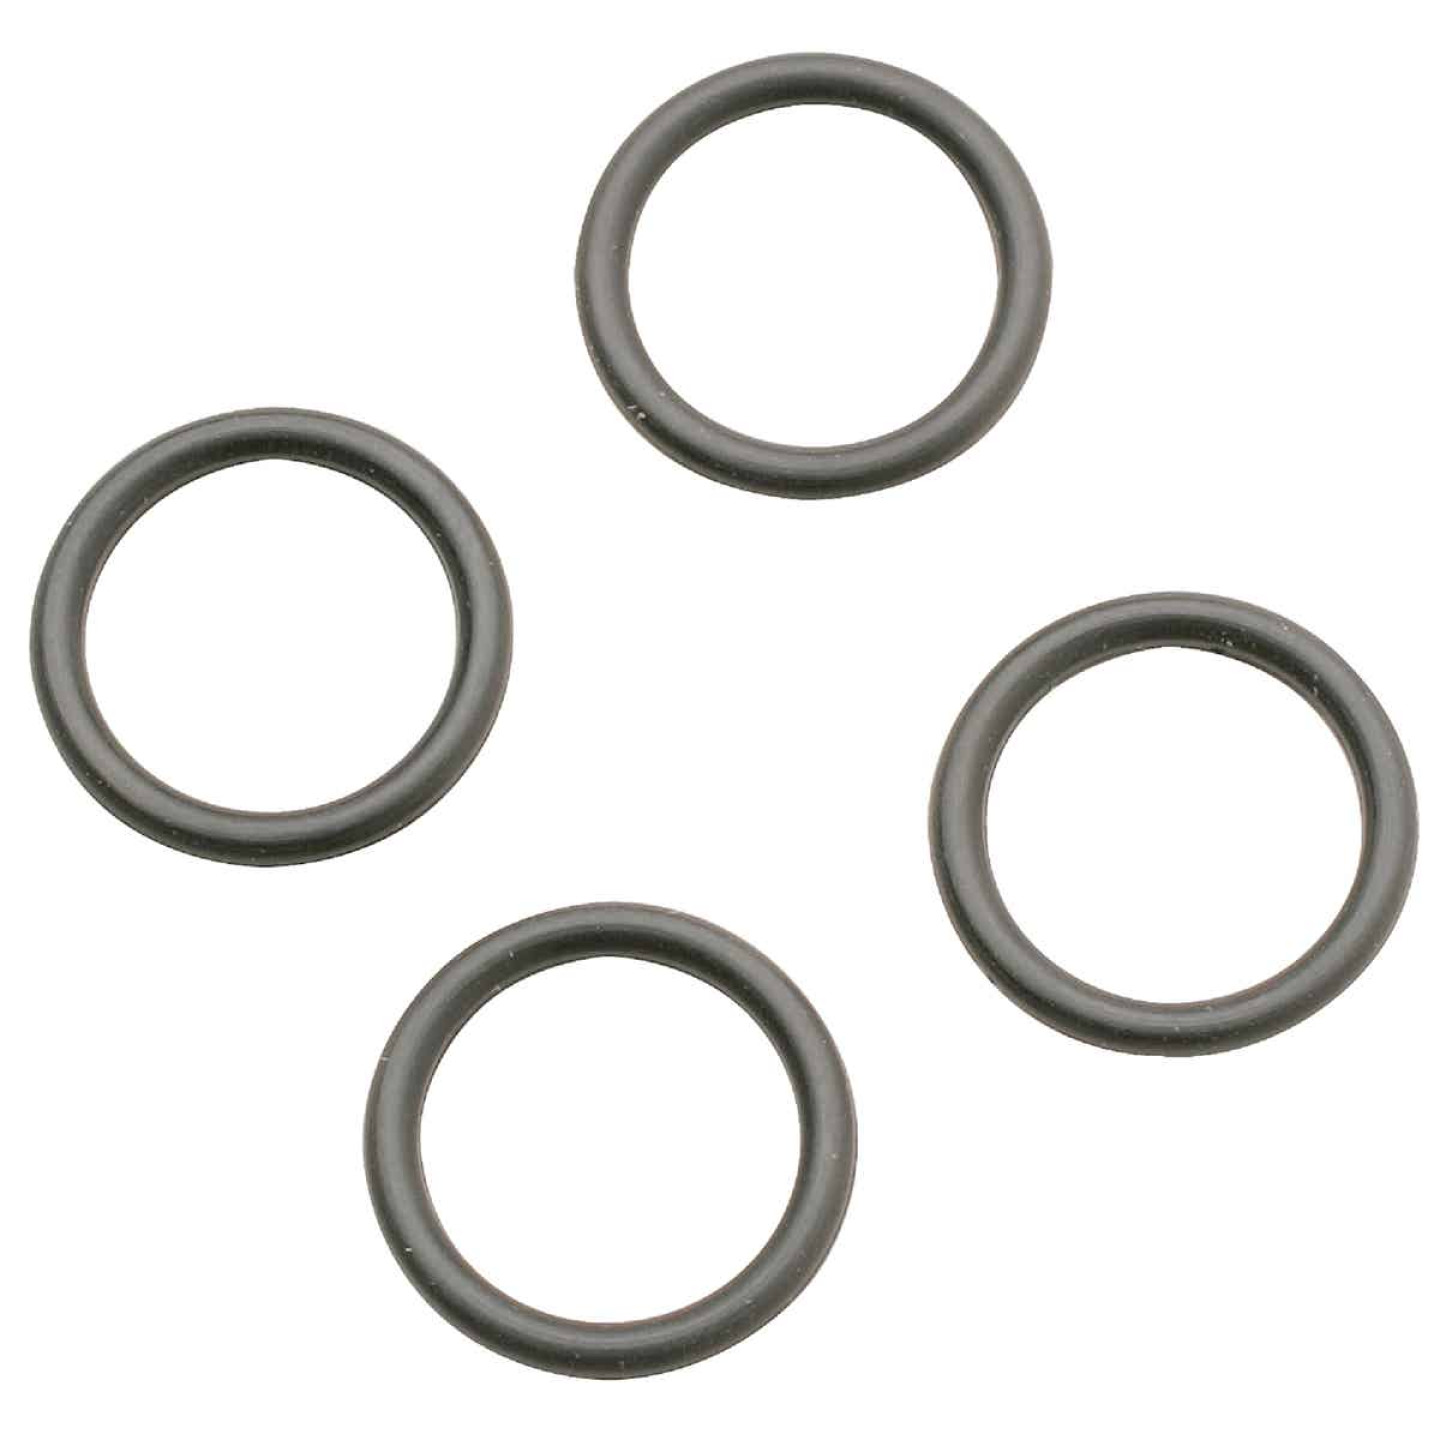 Do it 1/2 In. x 11/16 In. x 3/32 In. O-Ring (4 Ct.) Image 1